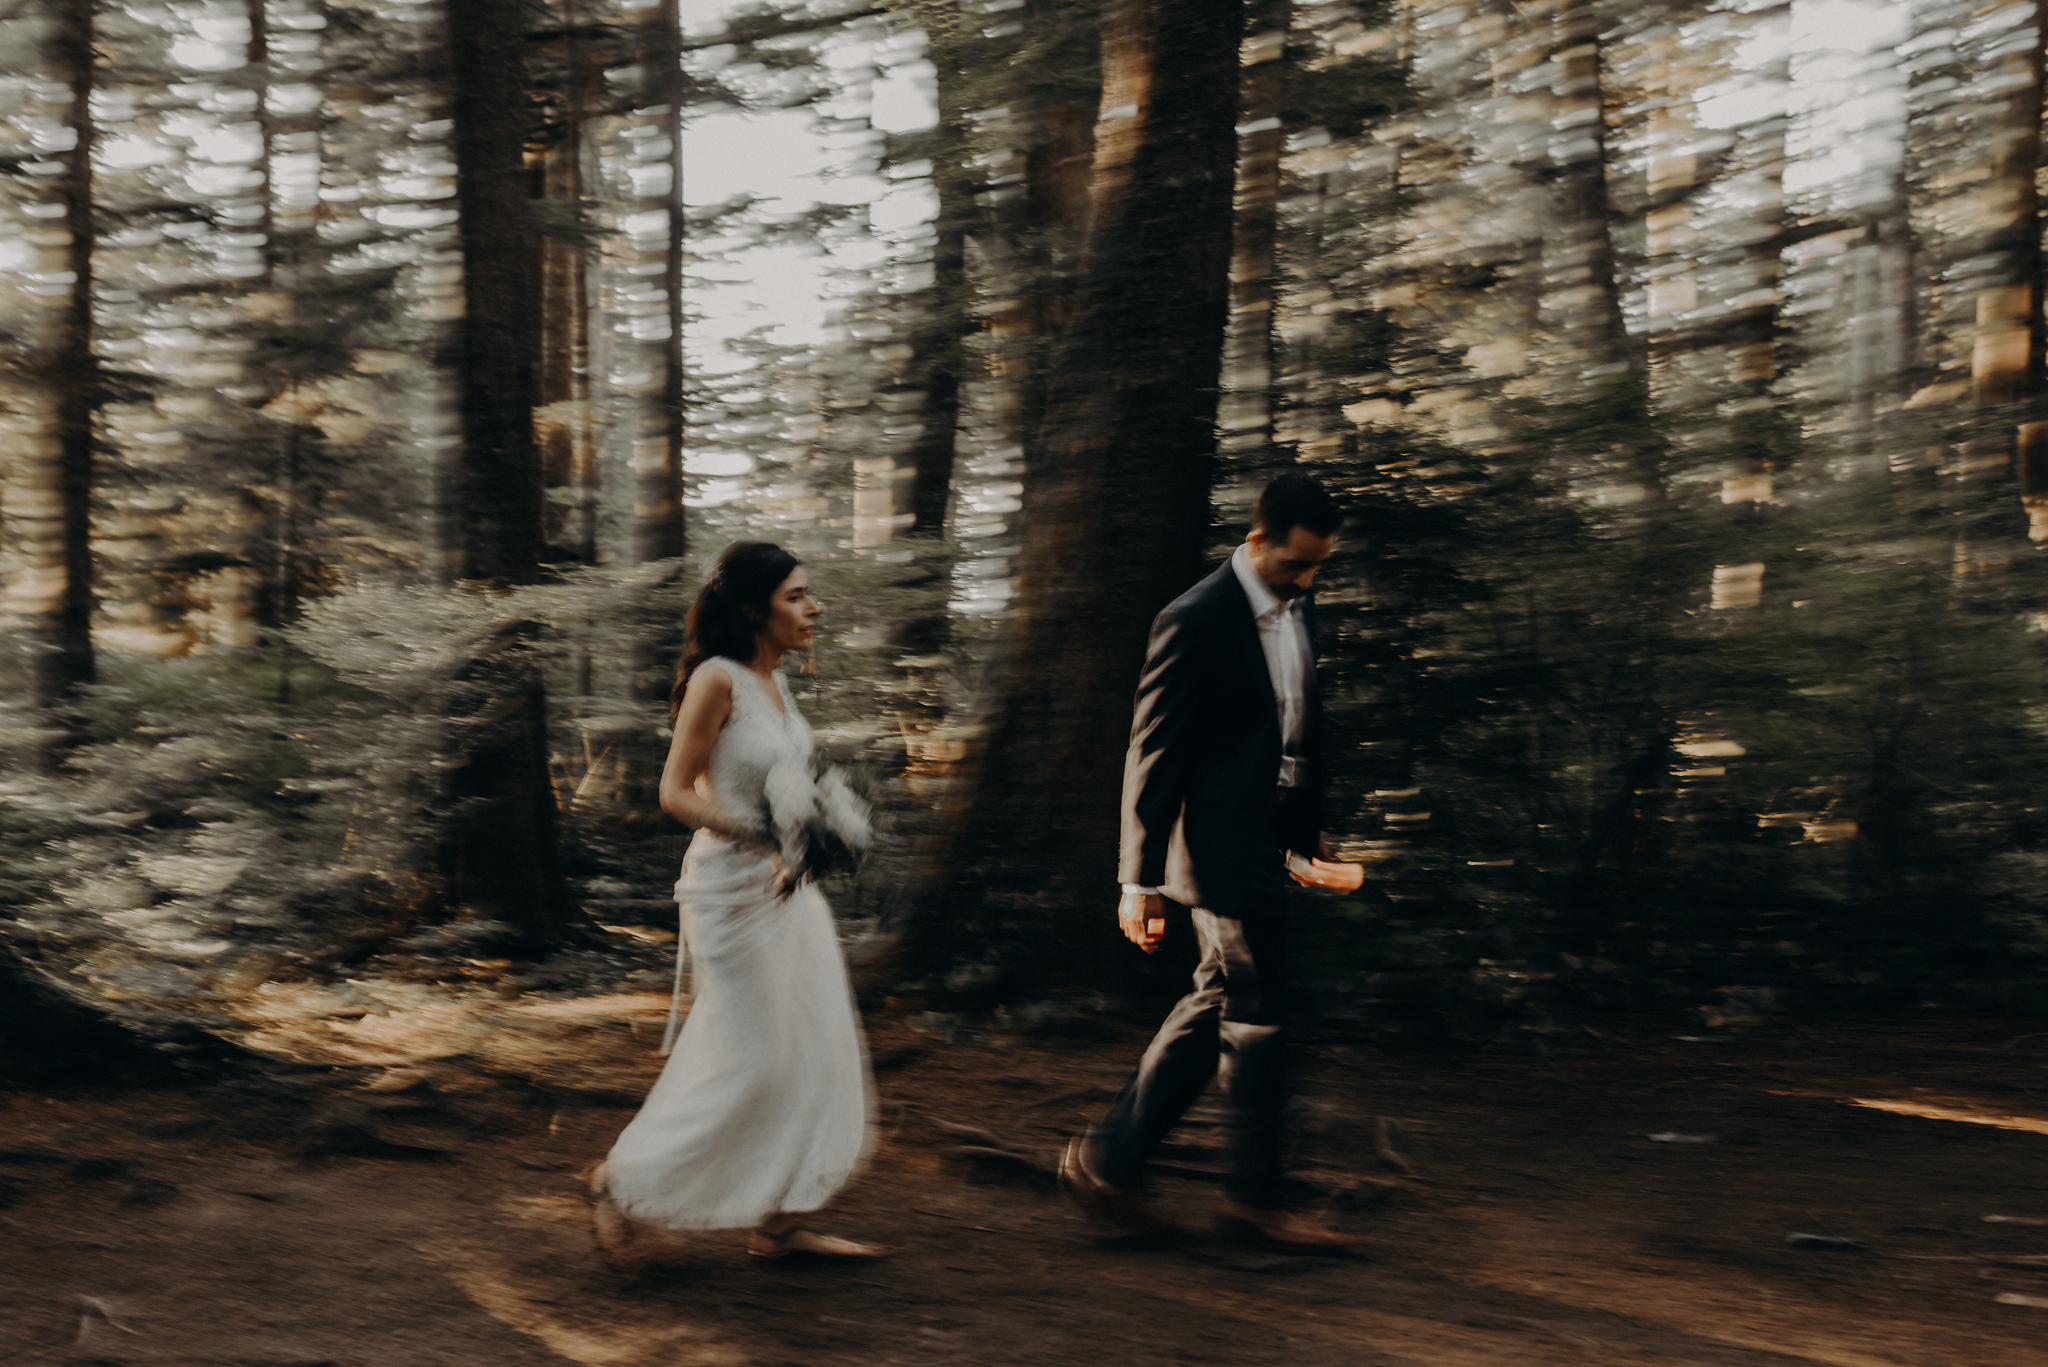 Isaiah + Taylor Photography - Cape Flattery Elopement, Olympia National Forest Wedding Photographer-123.jpg